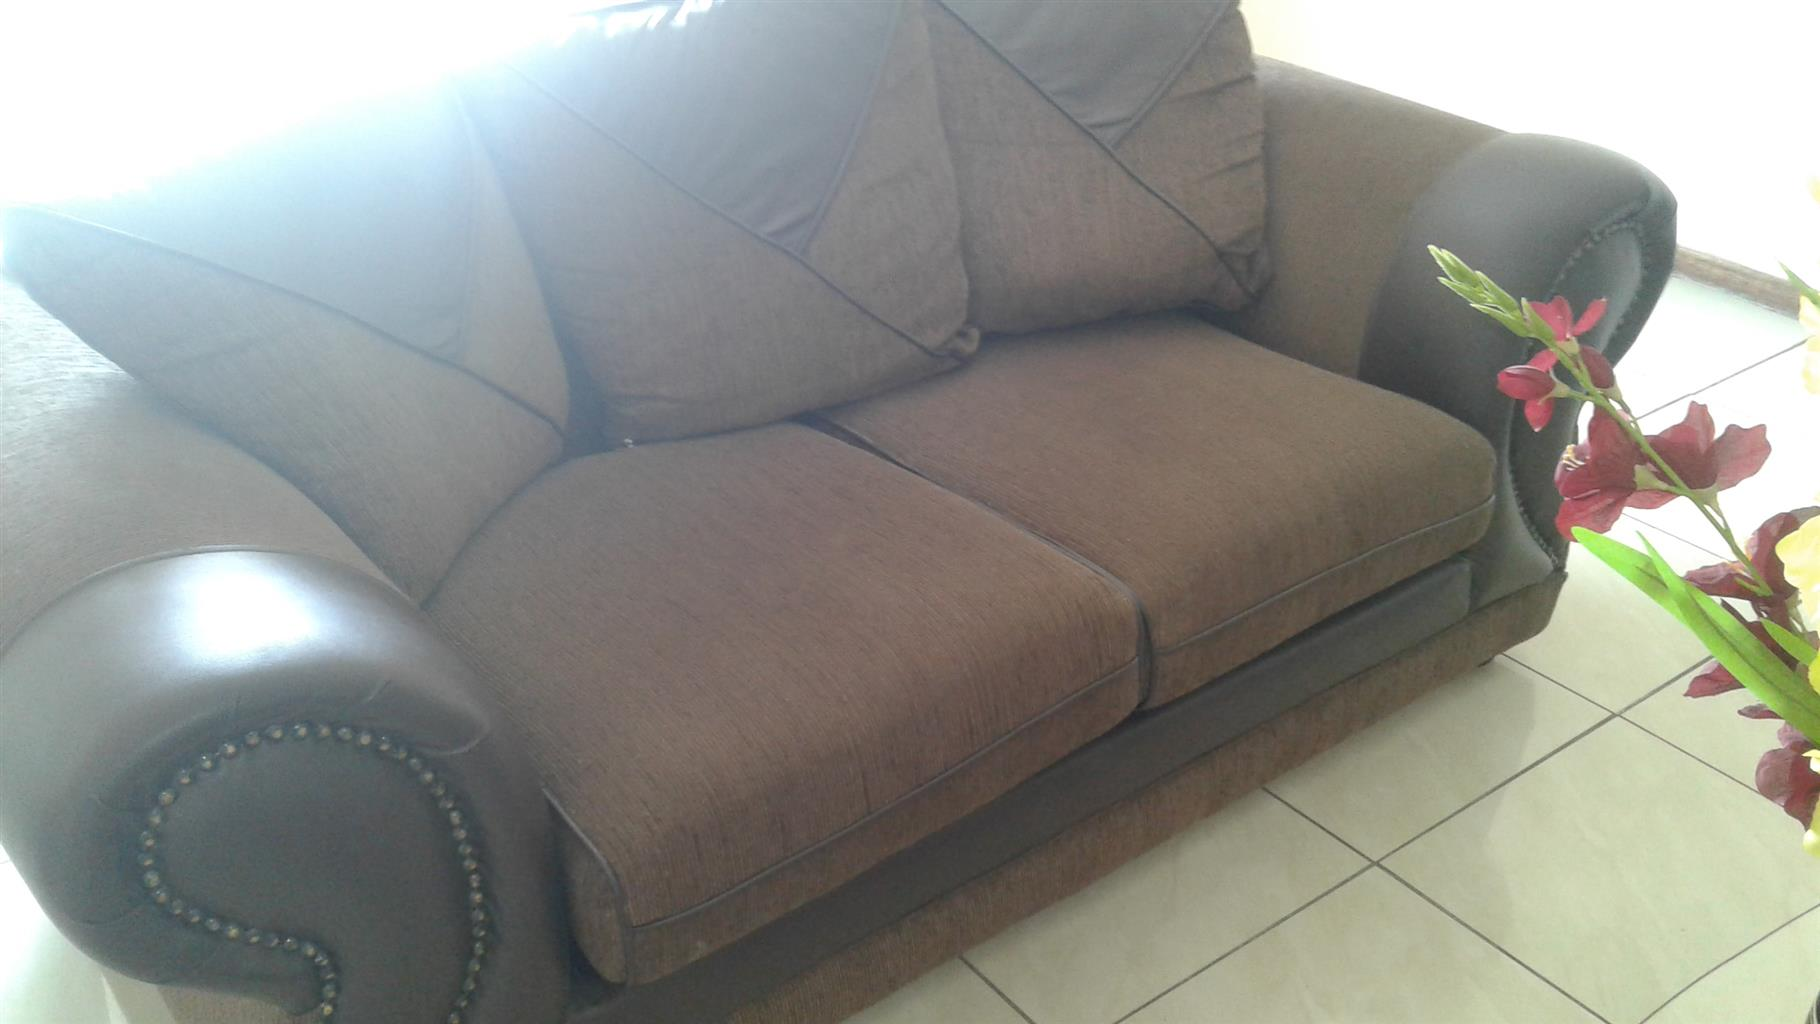 2 COUCHES,COFFEE TABLE SET & CARPET